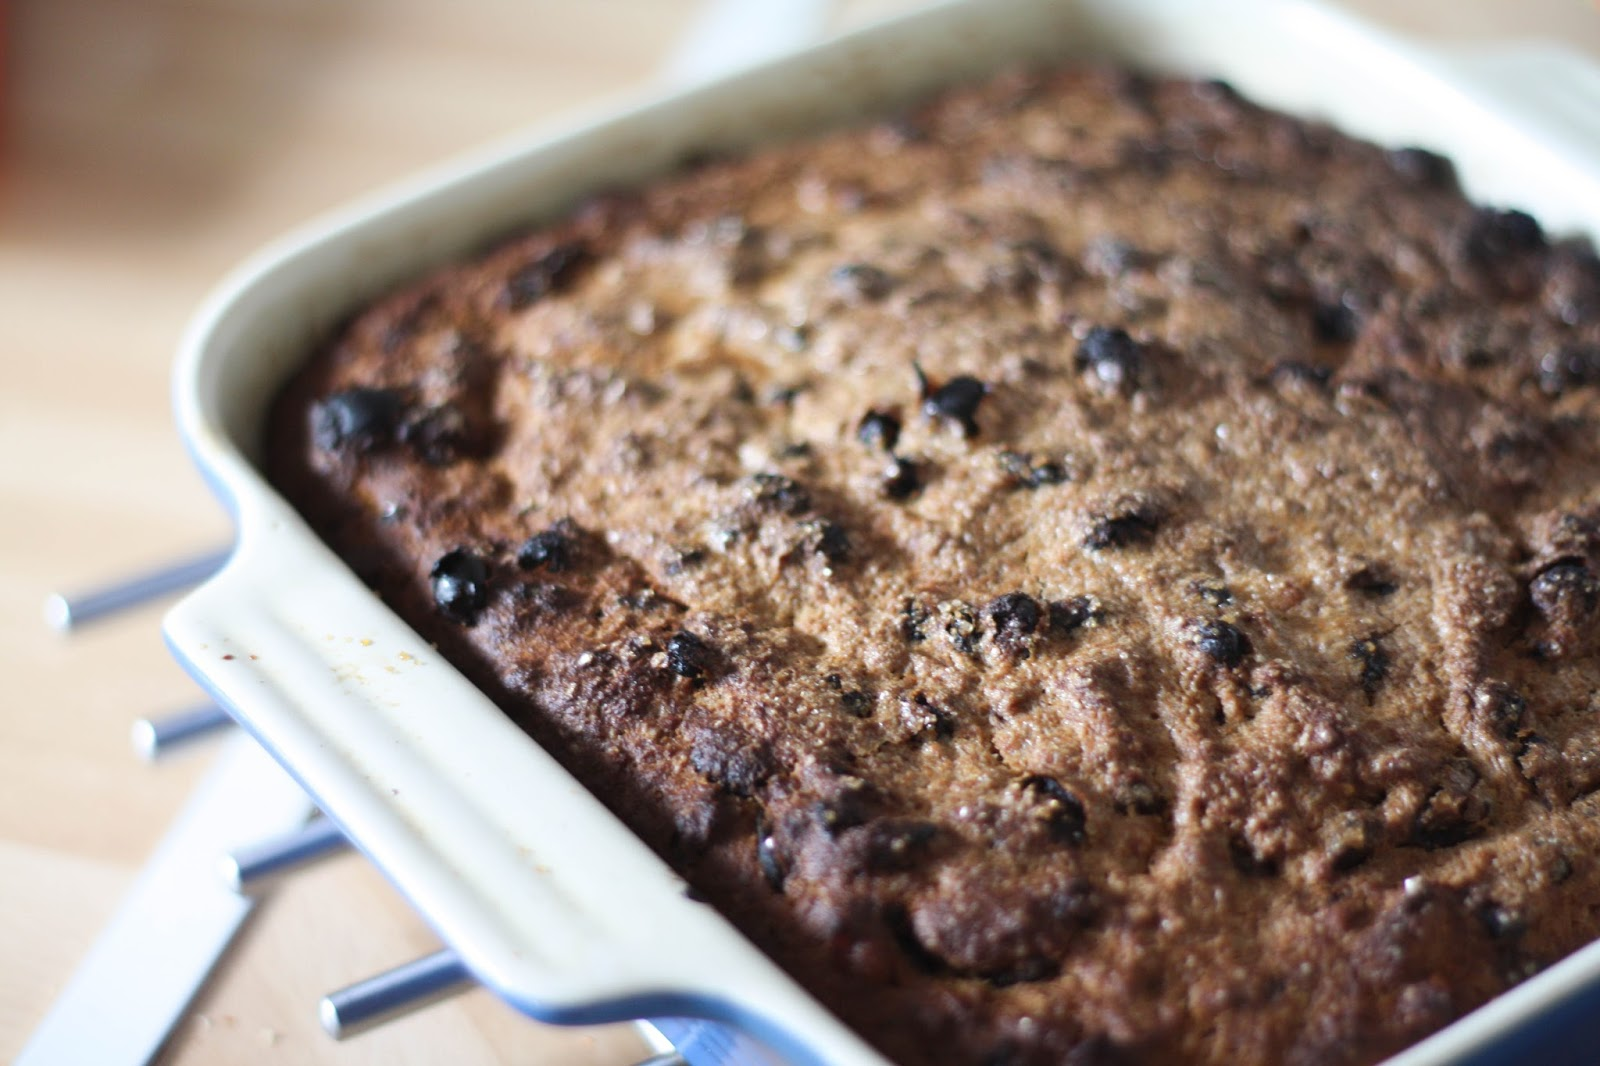 The Black Country Bread Pudding